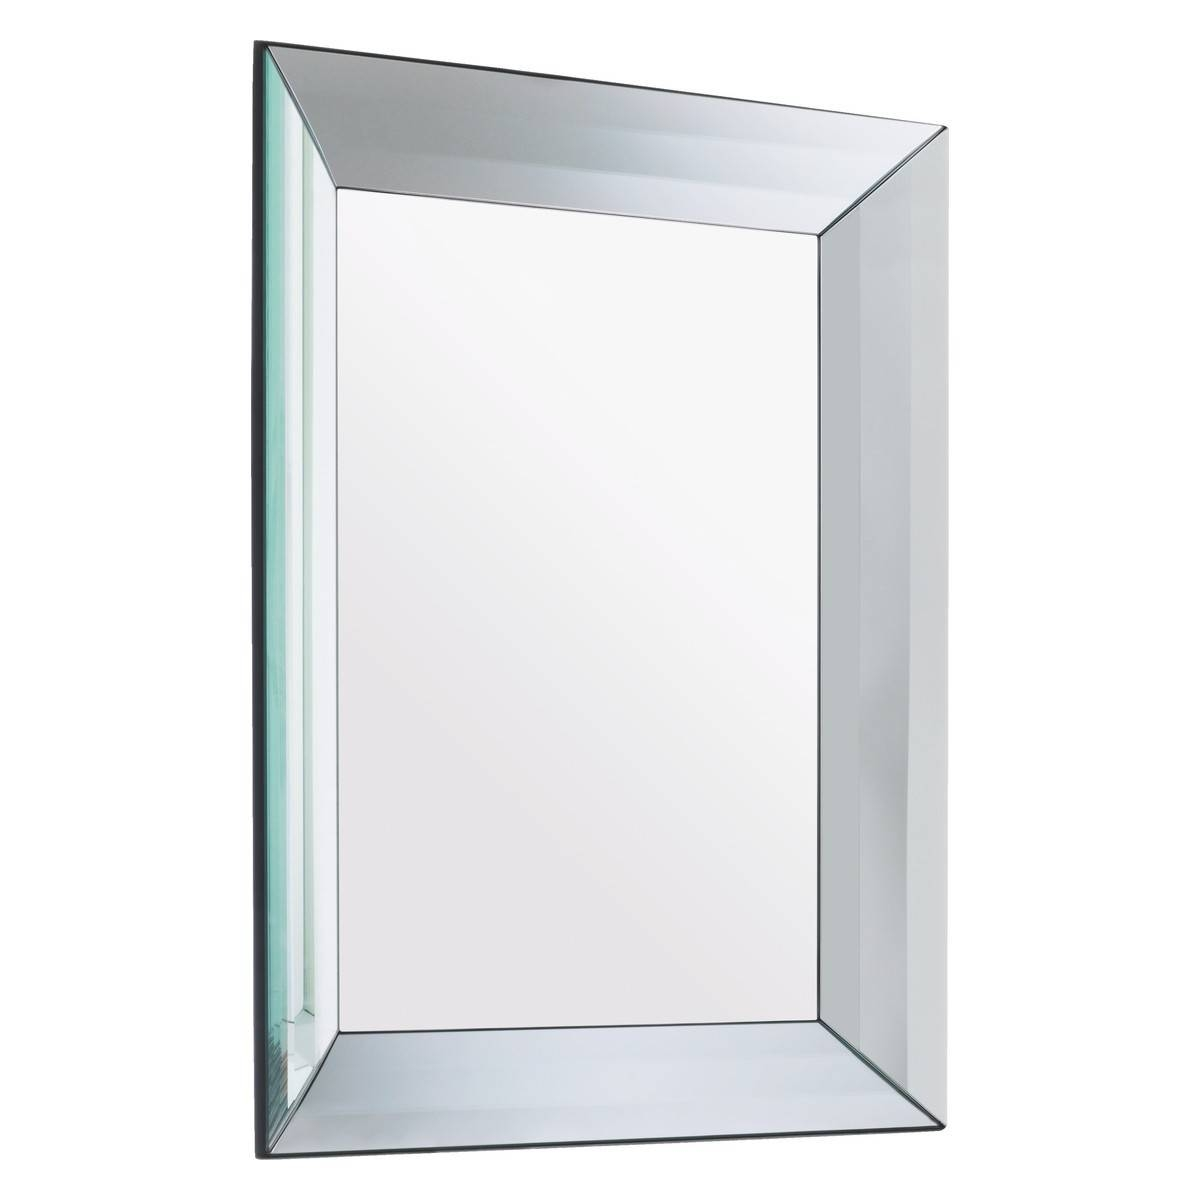 Luella 60 X 80Cm Rectangular Bevelled Wall Mirror | Buy Now At Regarding Silver Bevelled Mirrors (View 19 of 25)